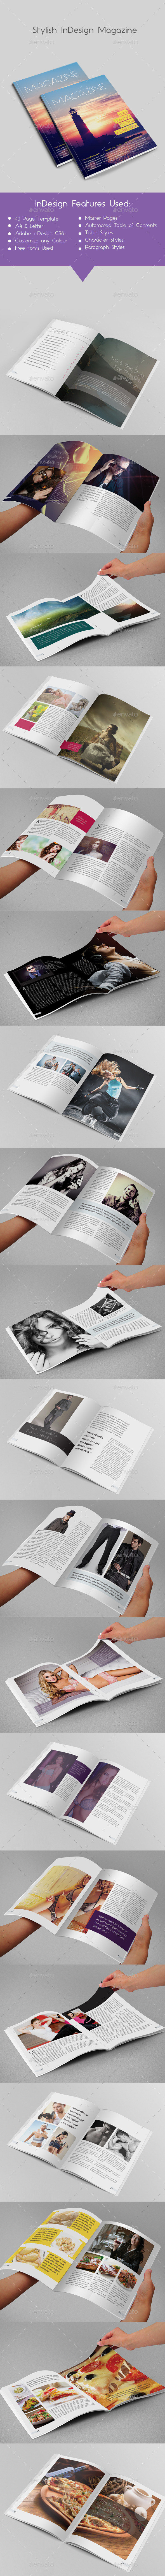 Stylish InDesign Magazine 40 Pages - Magazines Print Templates